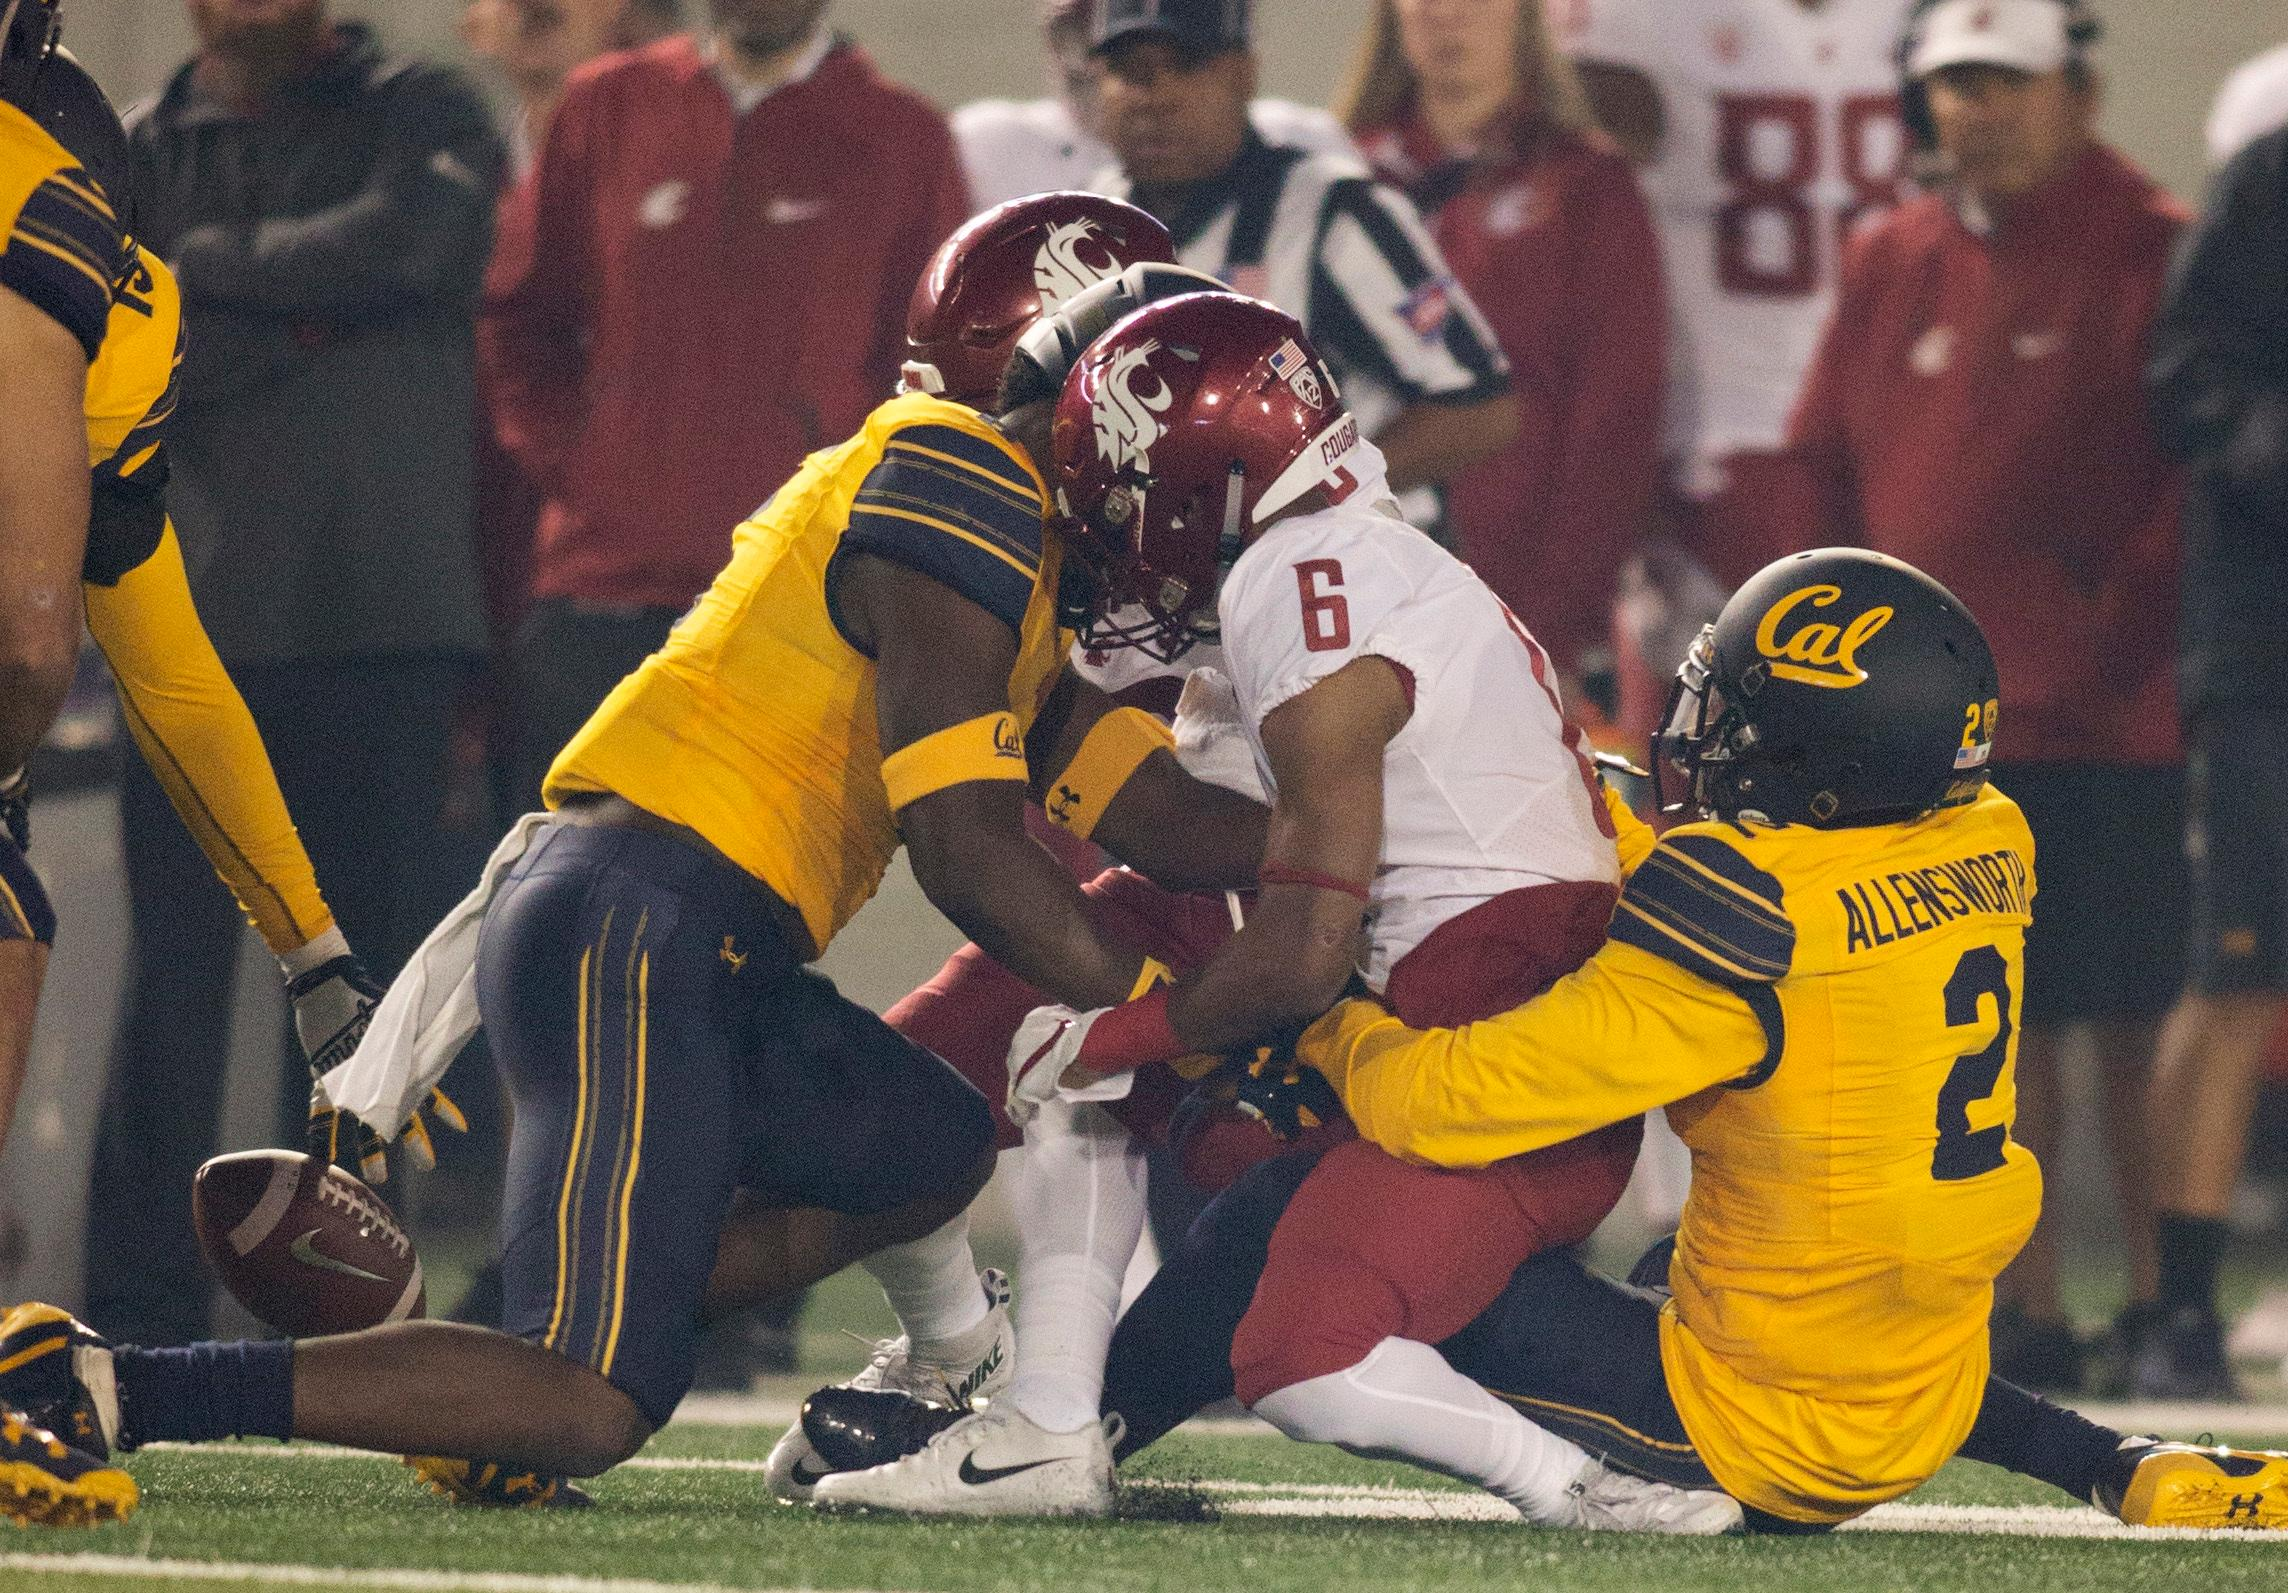 Washington State's Jamire Calvin (6) fumbles during the first quarter of an NCAA college football game against California, Friday, Oct. 13, 2017, in Berkeley, Calif. California recovered the ball. (AP Photo/D. Ross Cameron)